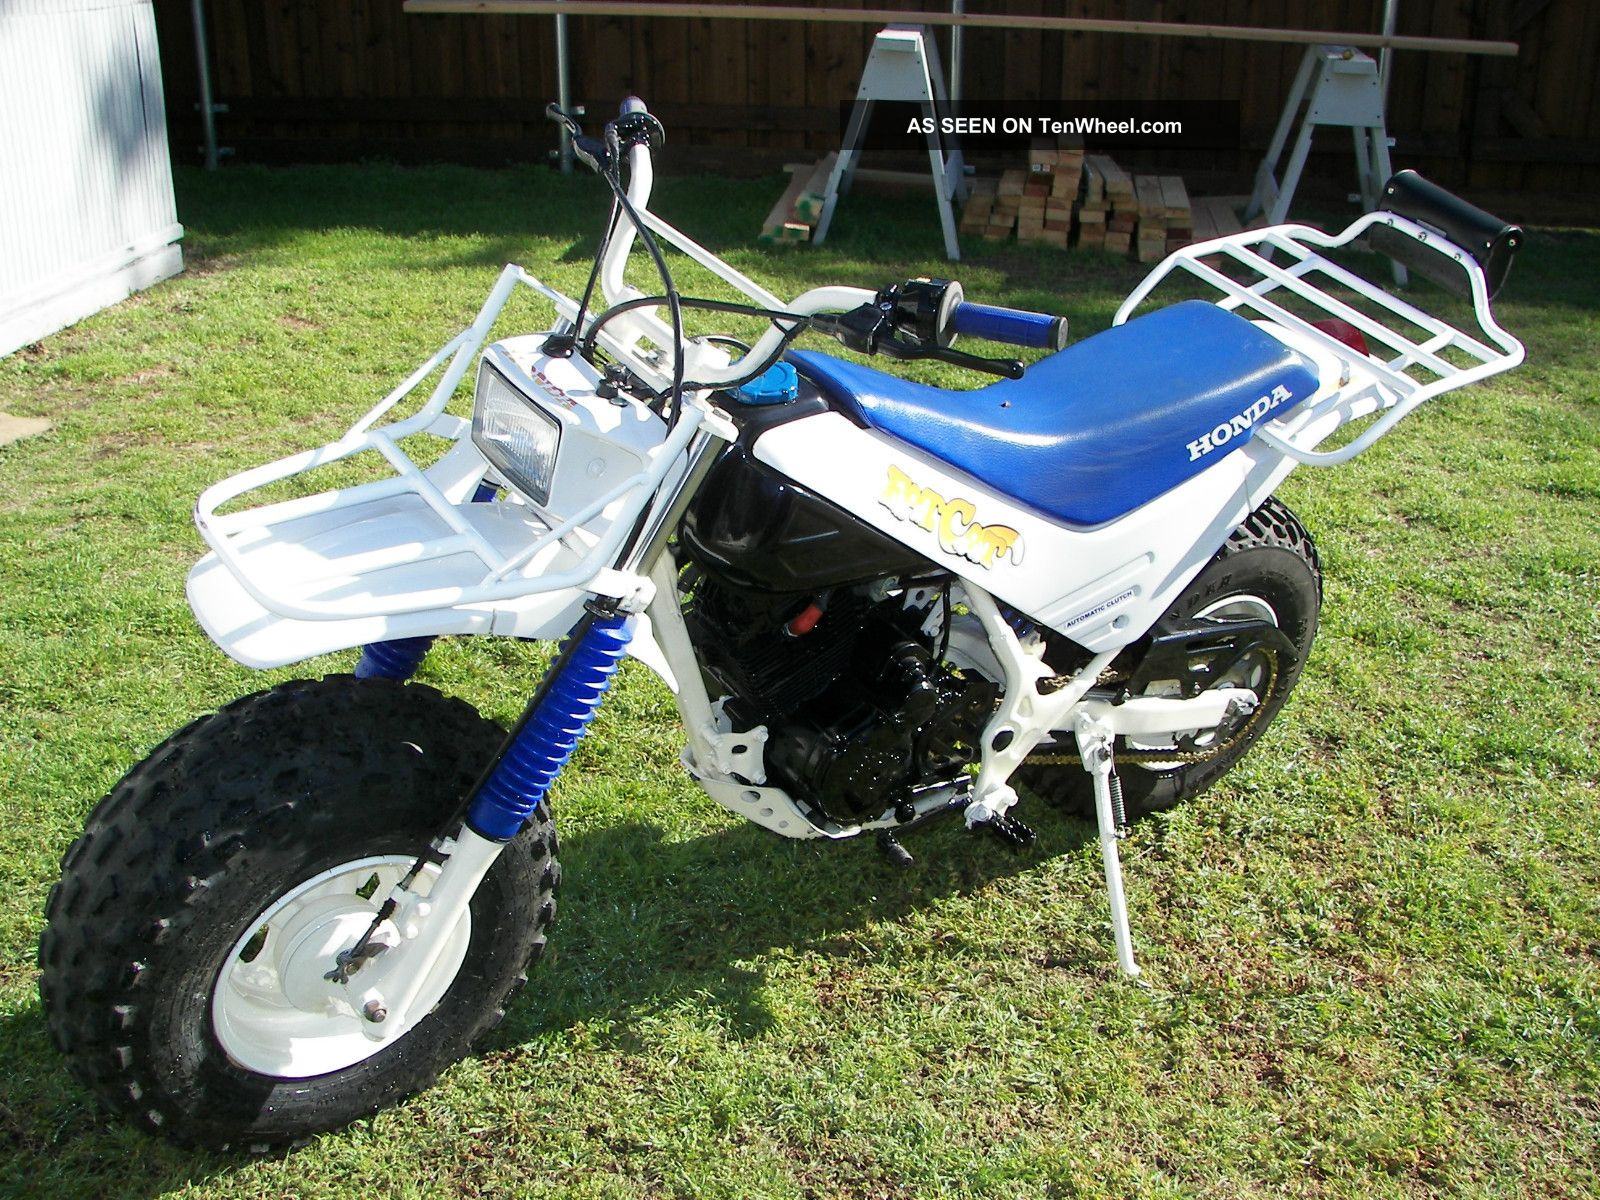 Gently 1986 Honda Tr200 Fatcat Motorcycle Other photo